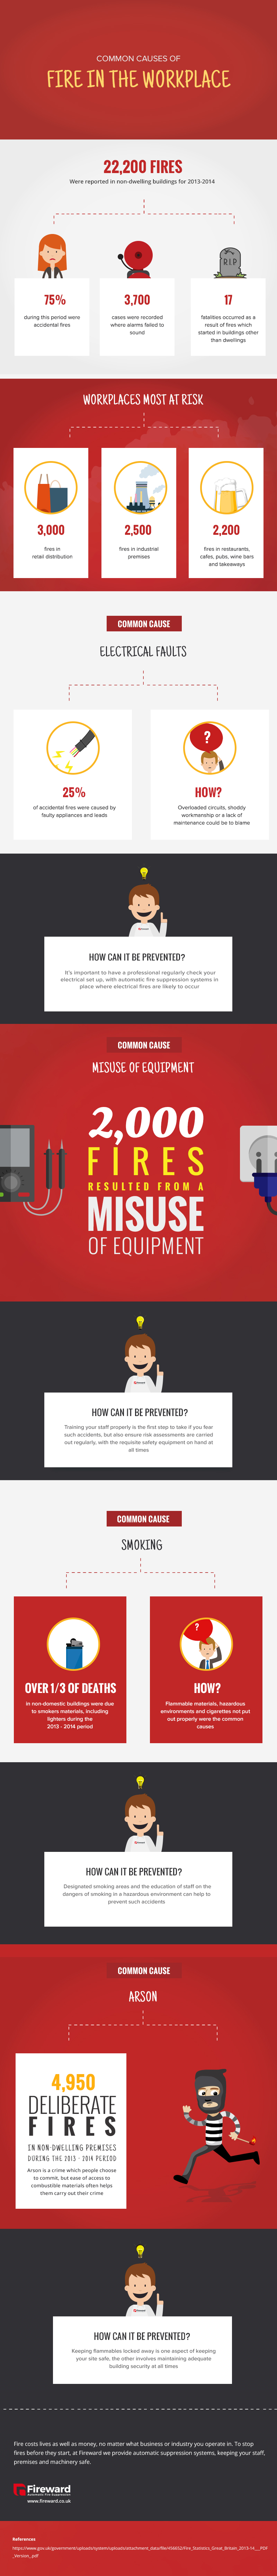 Common Causes of Fire in the Workplace